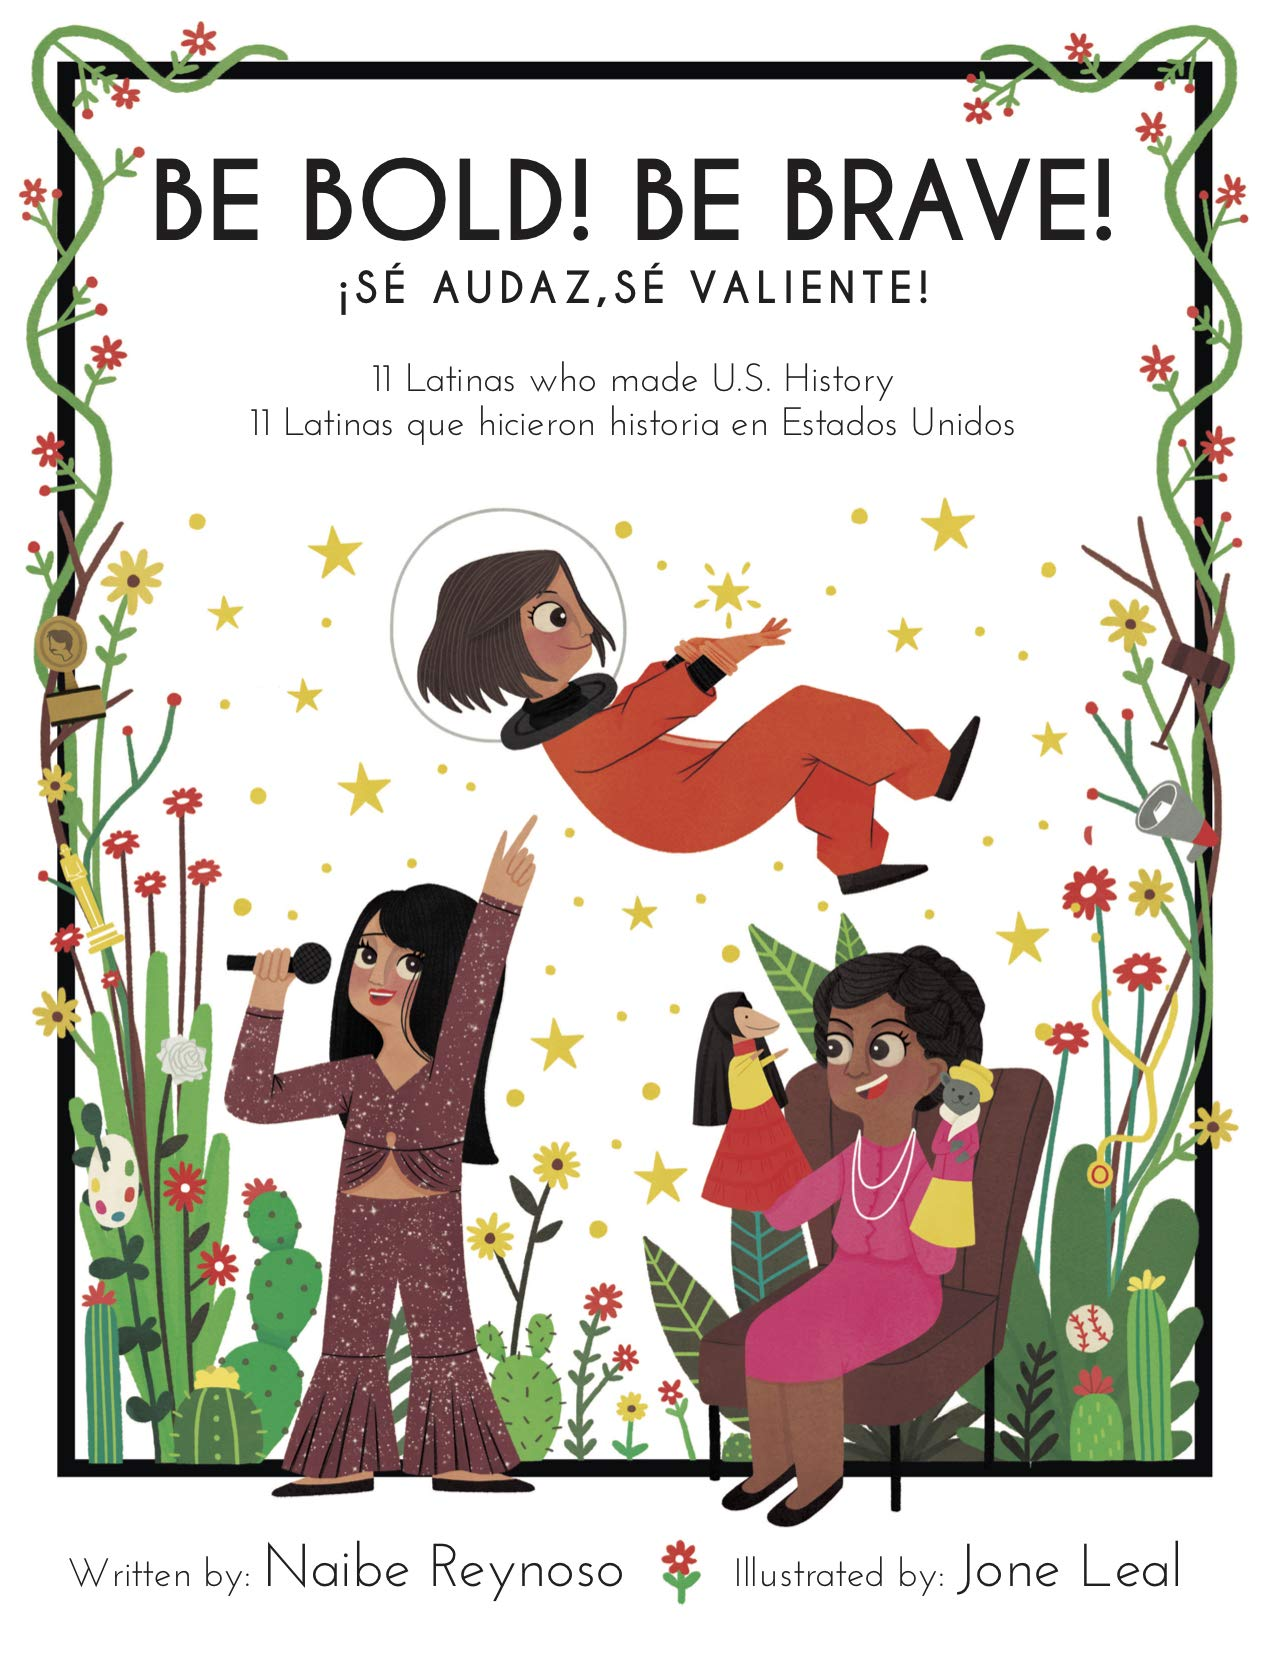 Be Bold! Be Brave! Children's Book Review